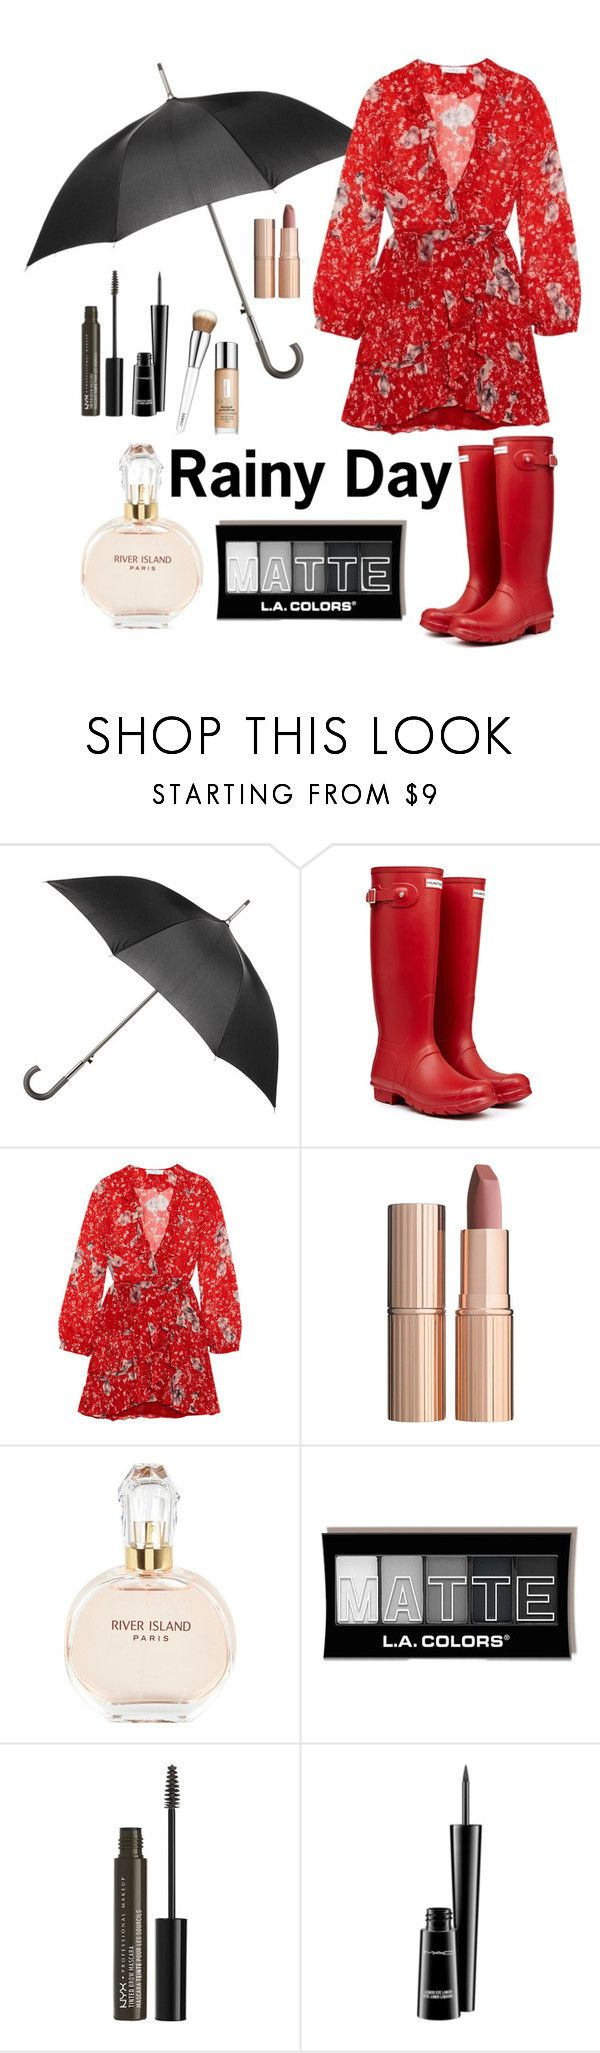 """Rainy Day"" by o-p-backe ❤ liked on Polyvore featuring Totes, Hunter, IRO, Charlotte Tilbury, River Island, NYX, MAC Cosmetics and Clinique"